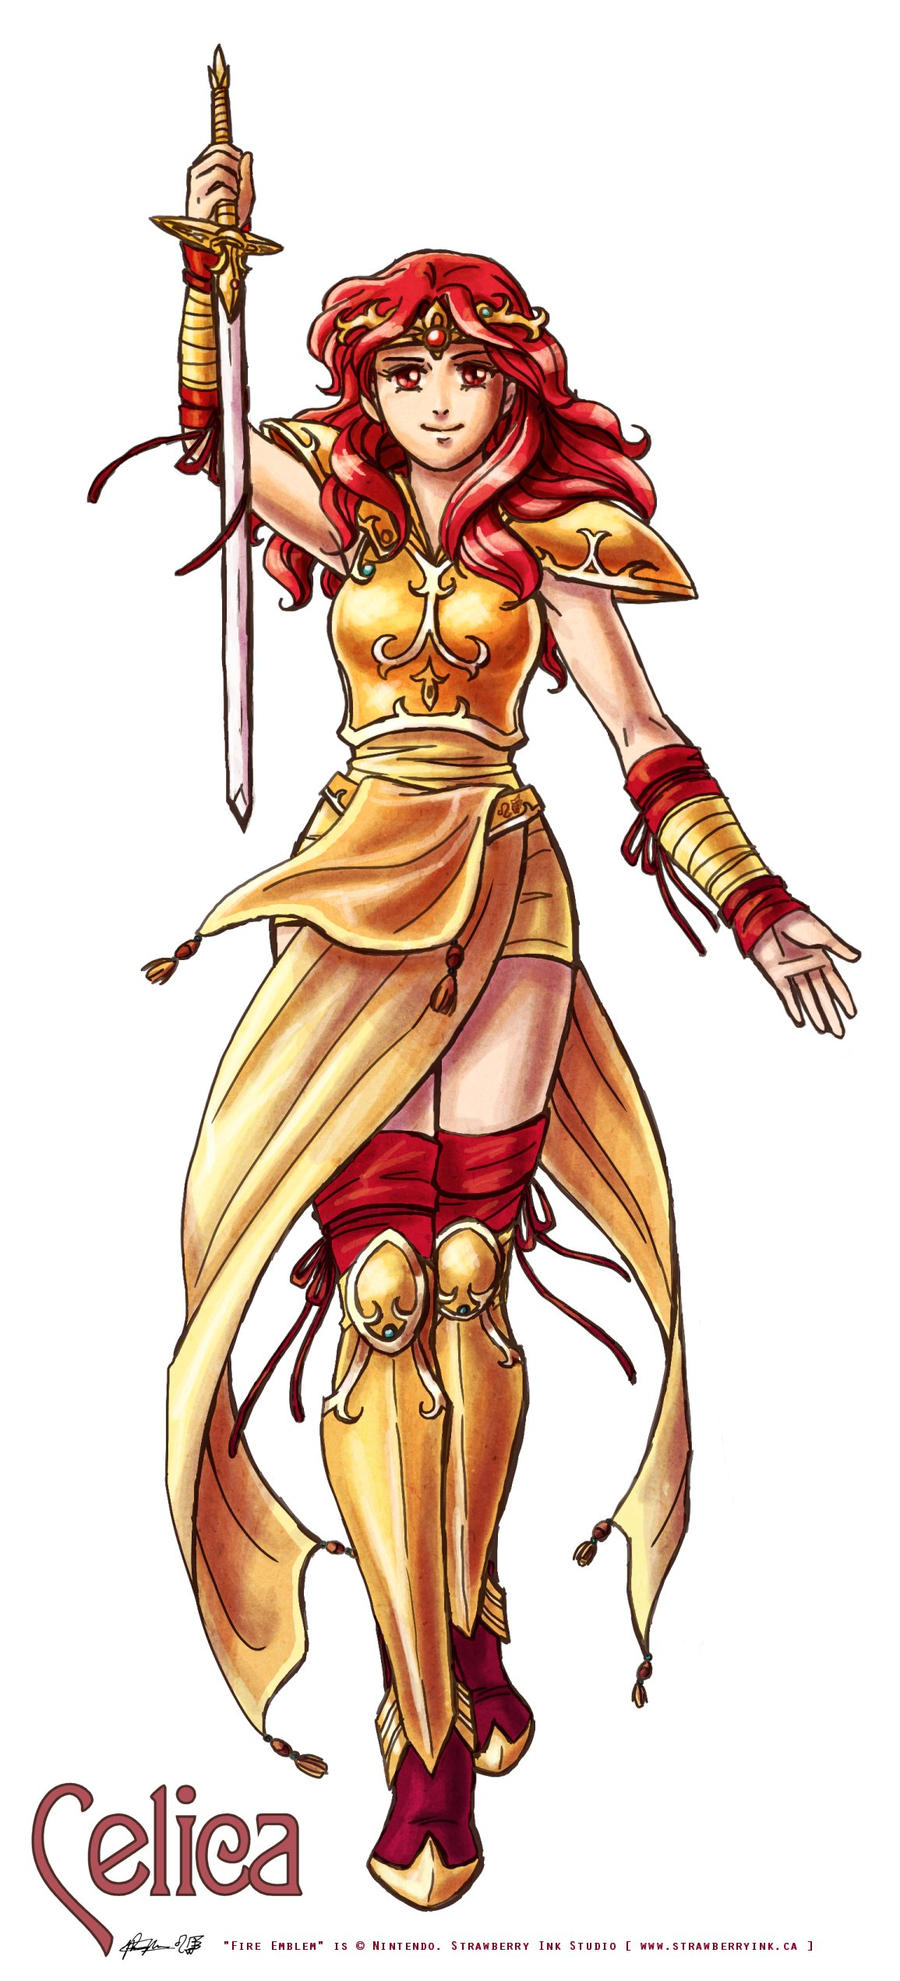 fire_emblem_celica_of_valencia_by_meibat